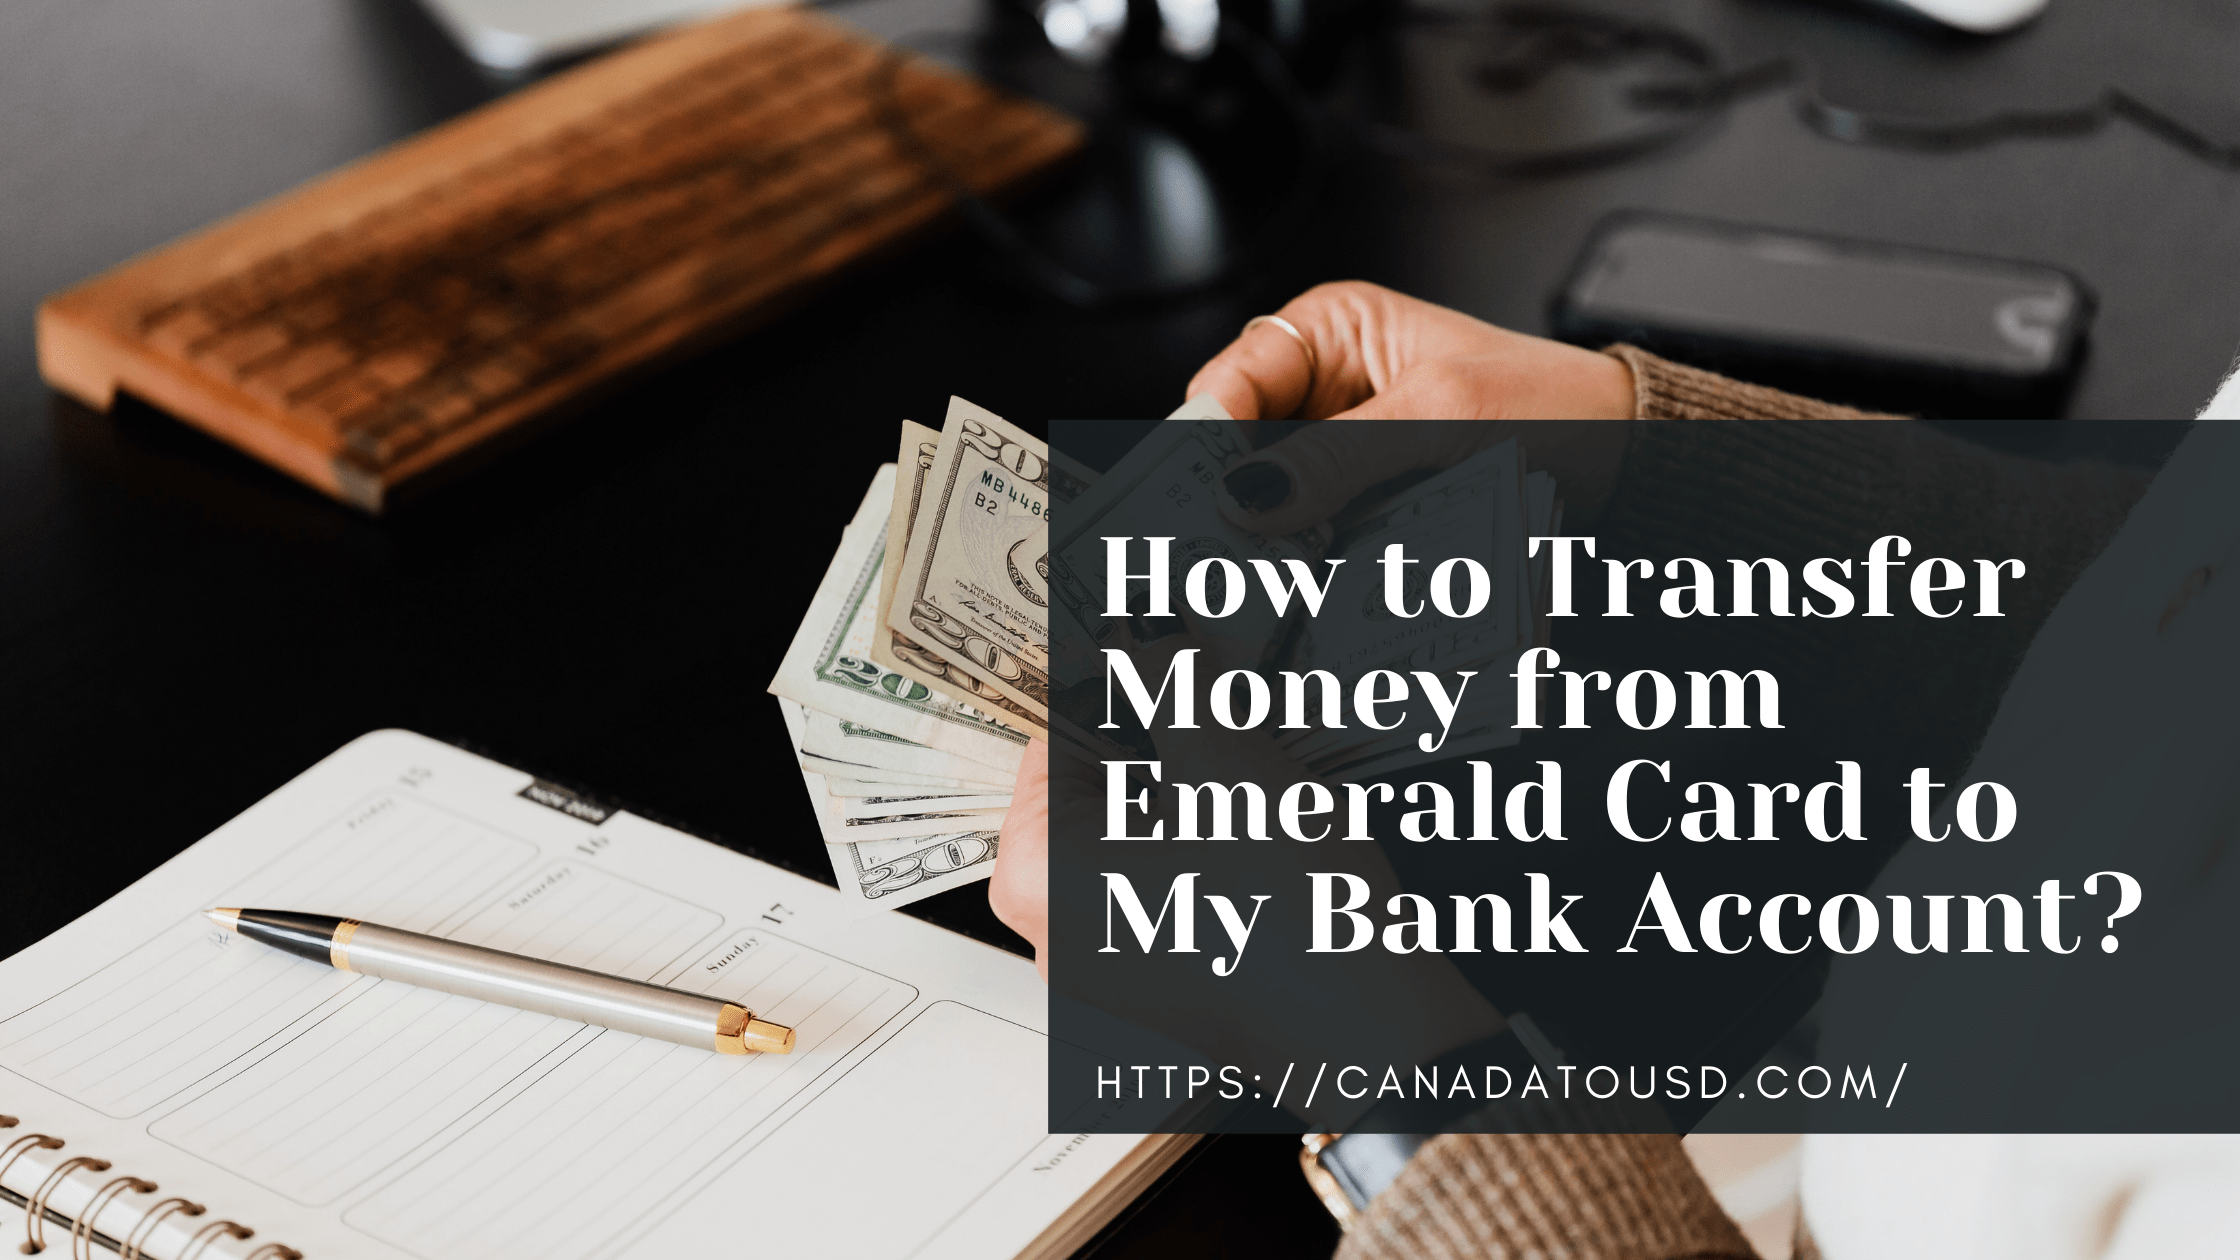 How to Transfer Money from Emerald Card to My Bank Account